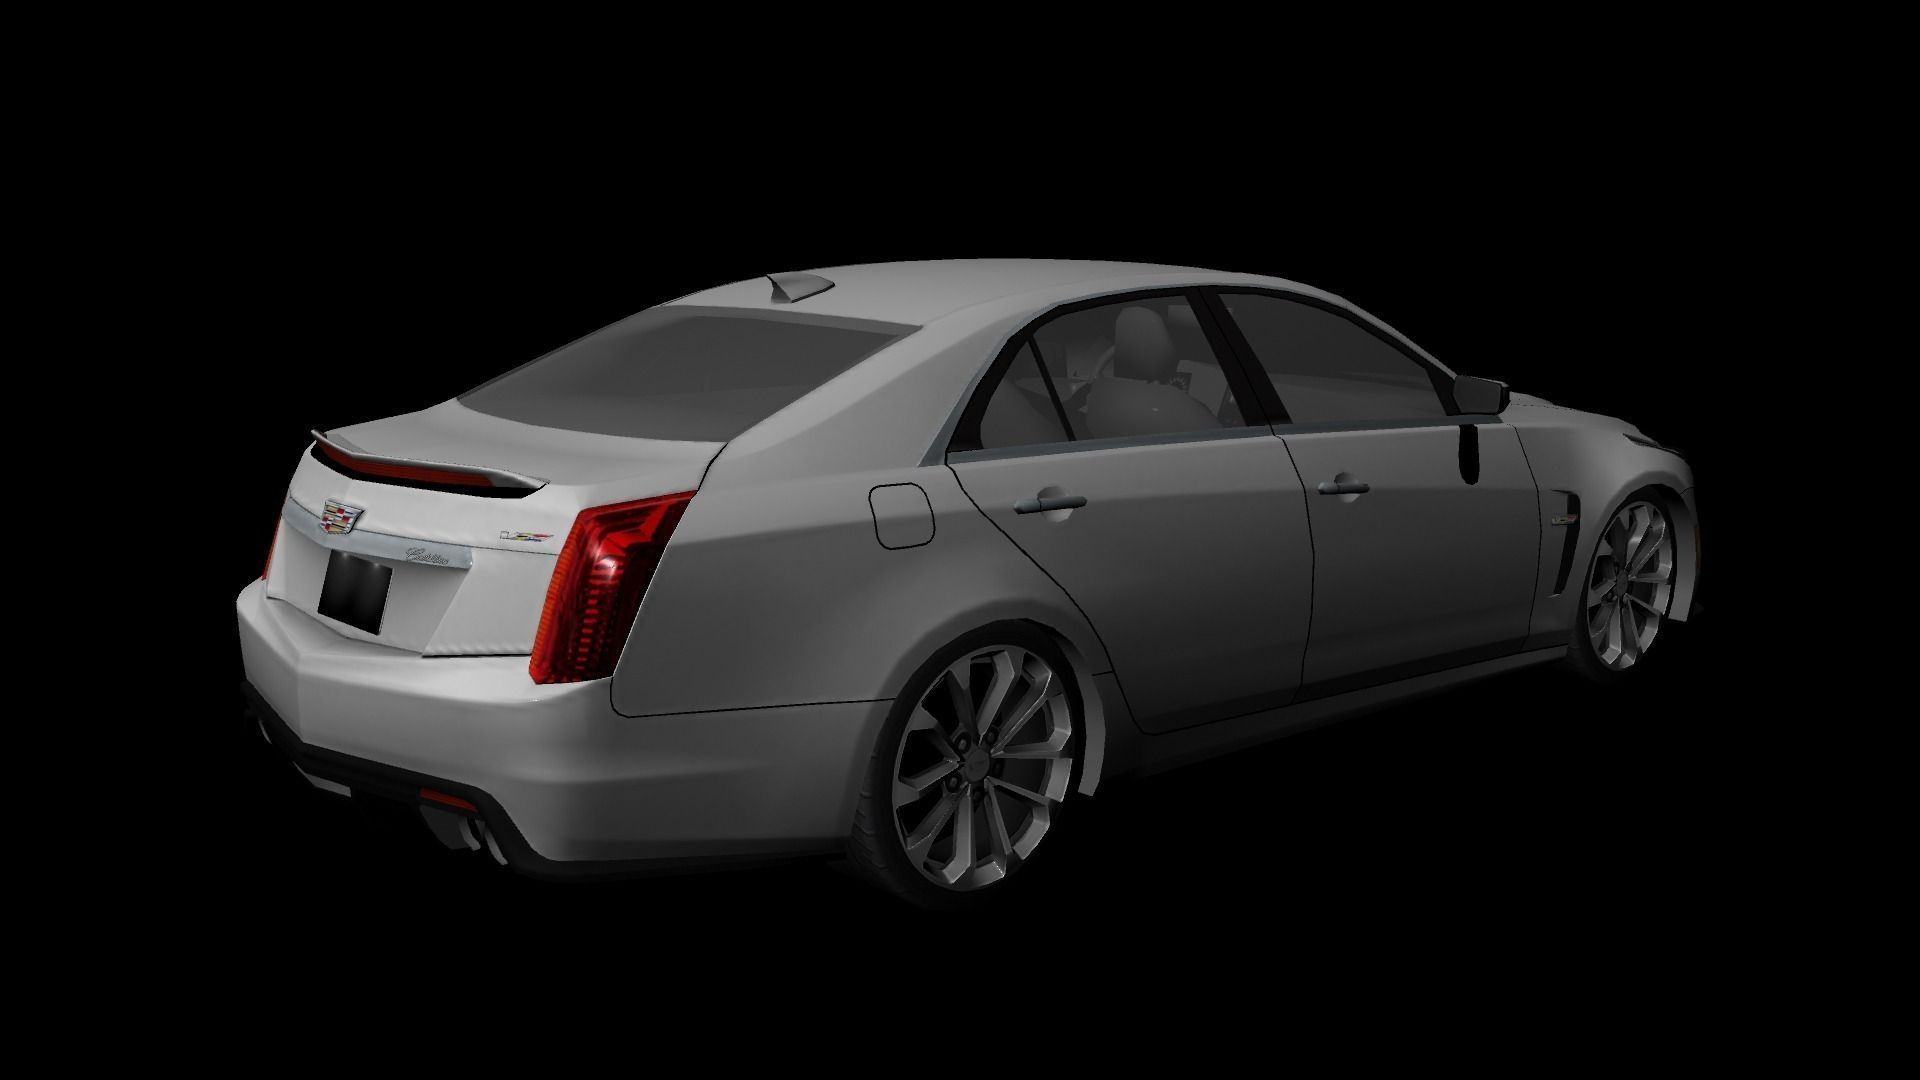 v flow o hre red form gets tintcoat cadillac obsession custom wheels cts rims